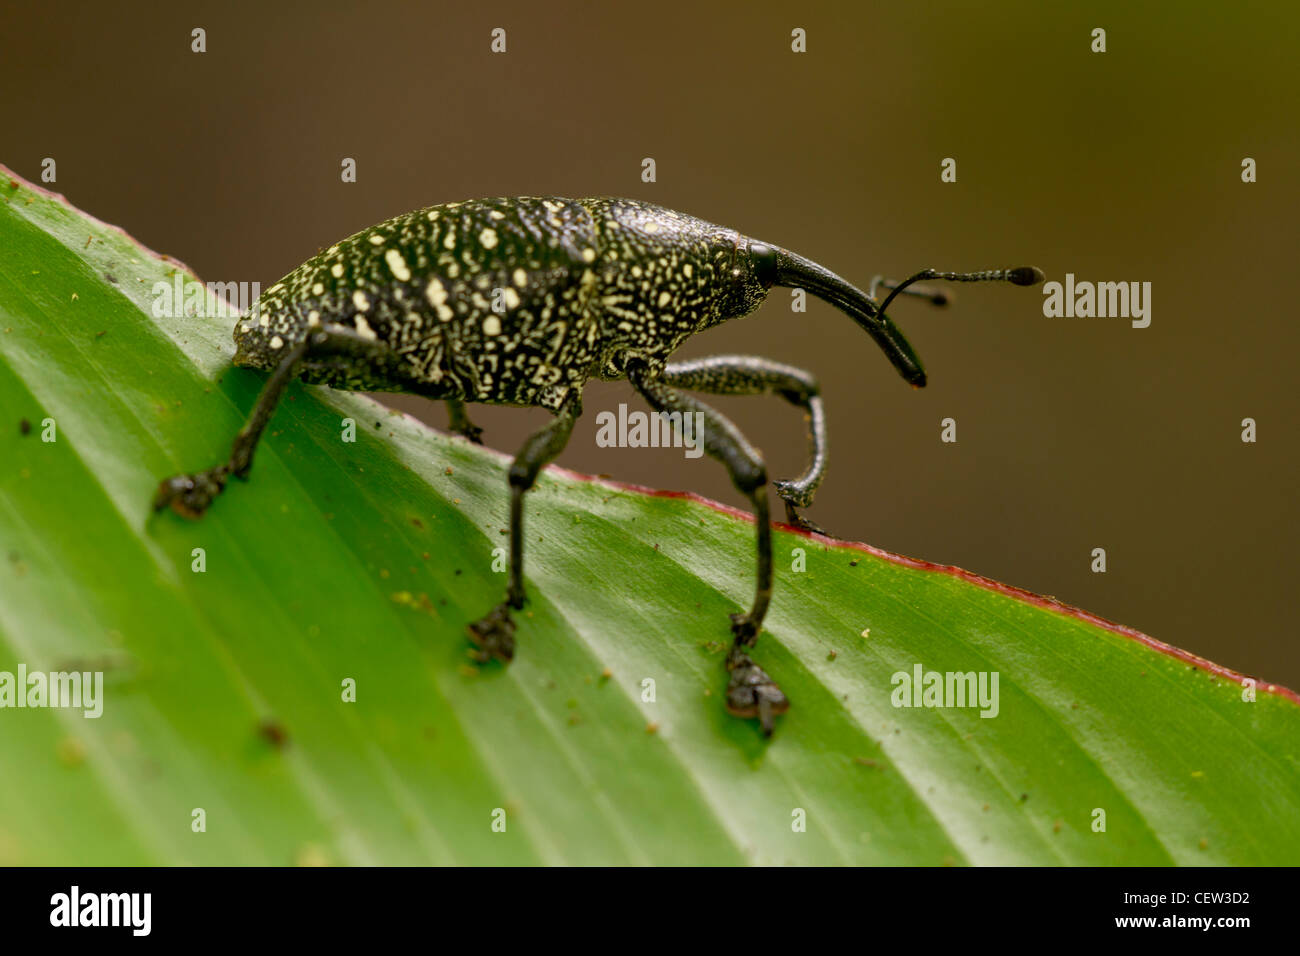 spotted weevil from rainforest, Selva Verde, Costa RicaStock Photo